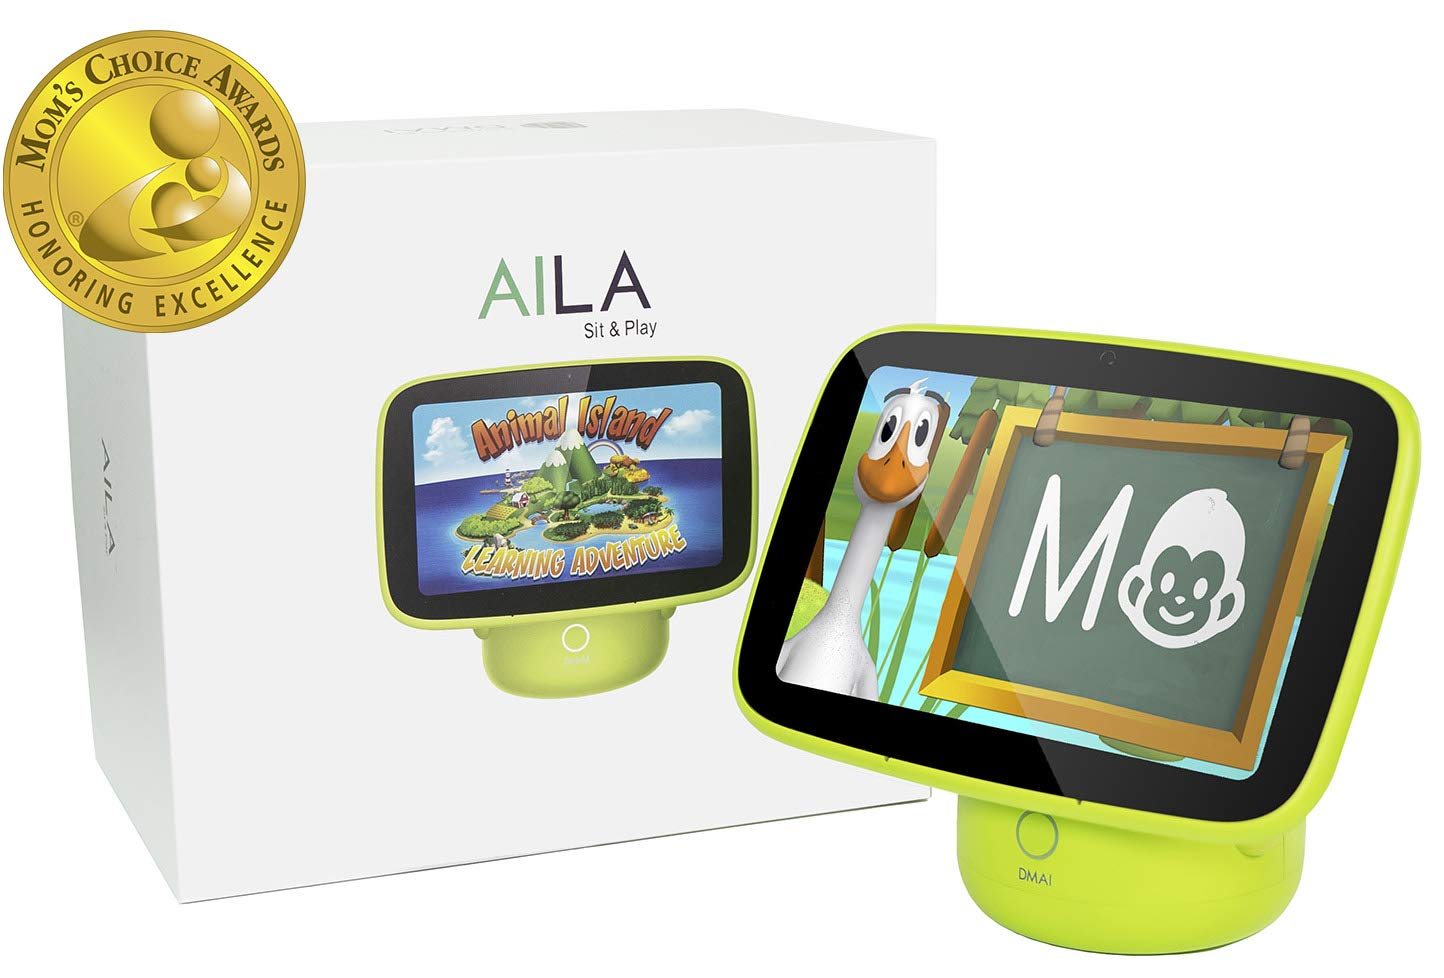 DMAI Aila Sit & Play Intelligent Monitor & Edutainment System Mom's Choice Award Gold Winner-Virtual Preschool Program Essential for Toddlers (12+ Months) Best Baby Gift for Early Childhood Education